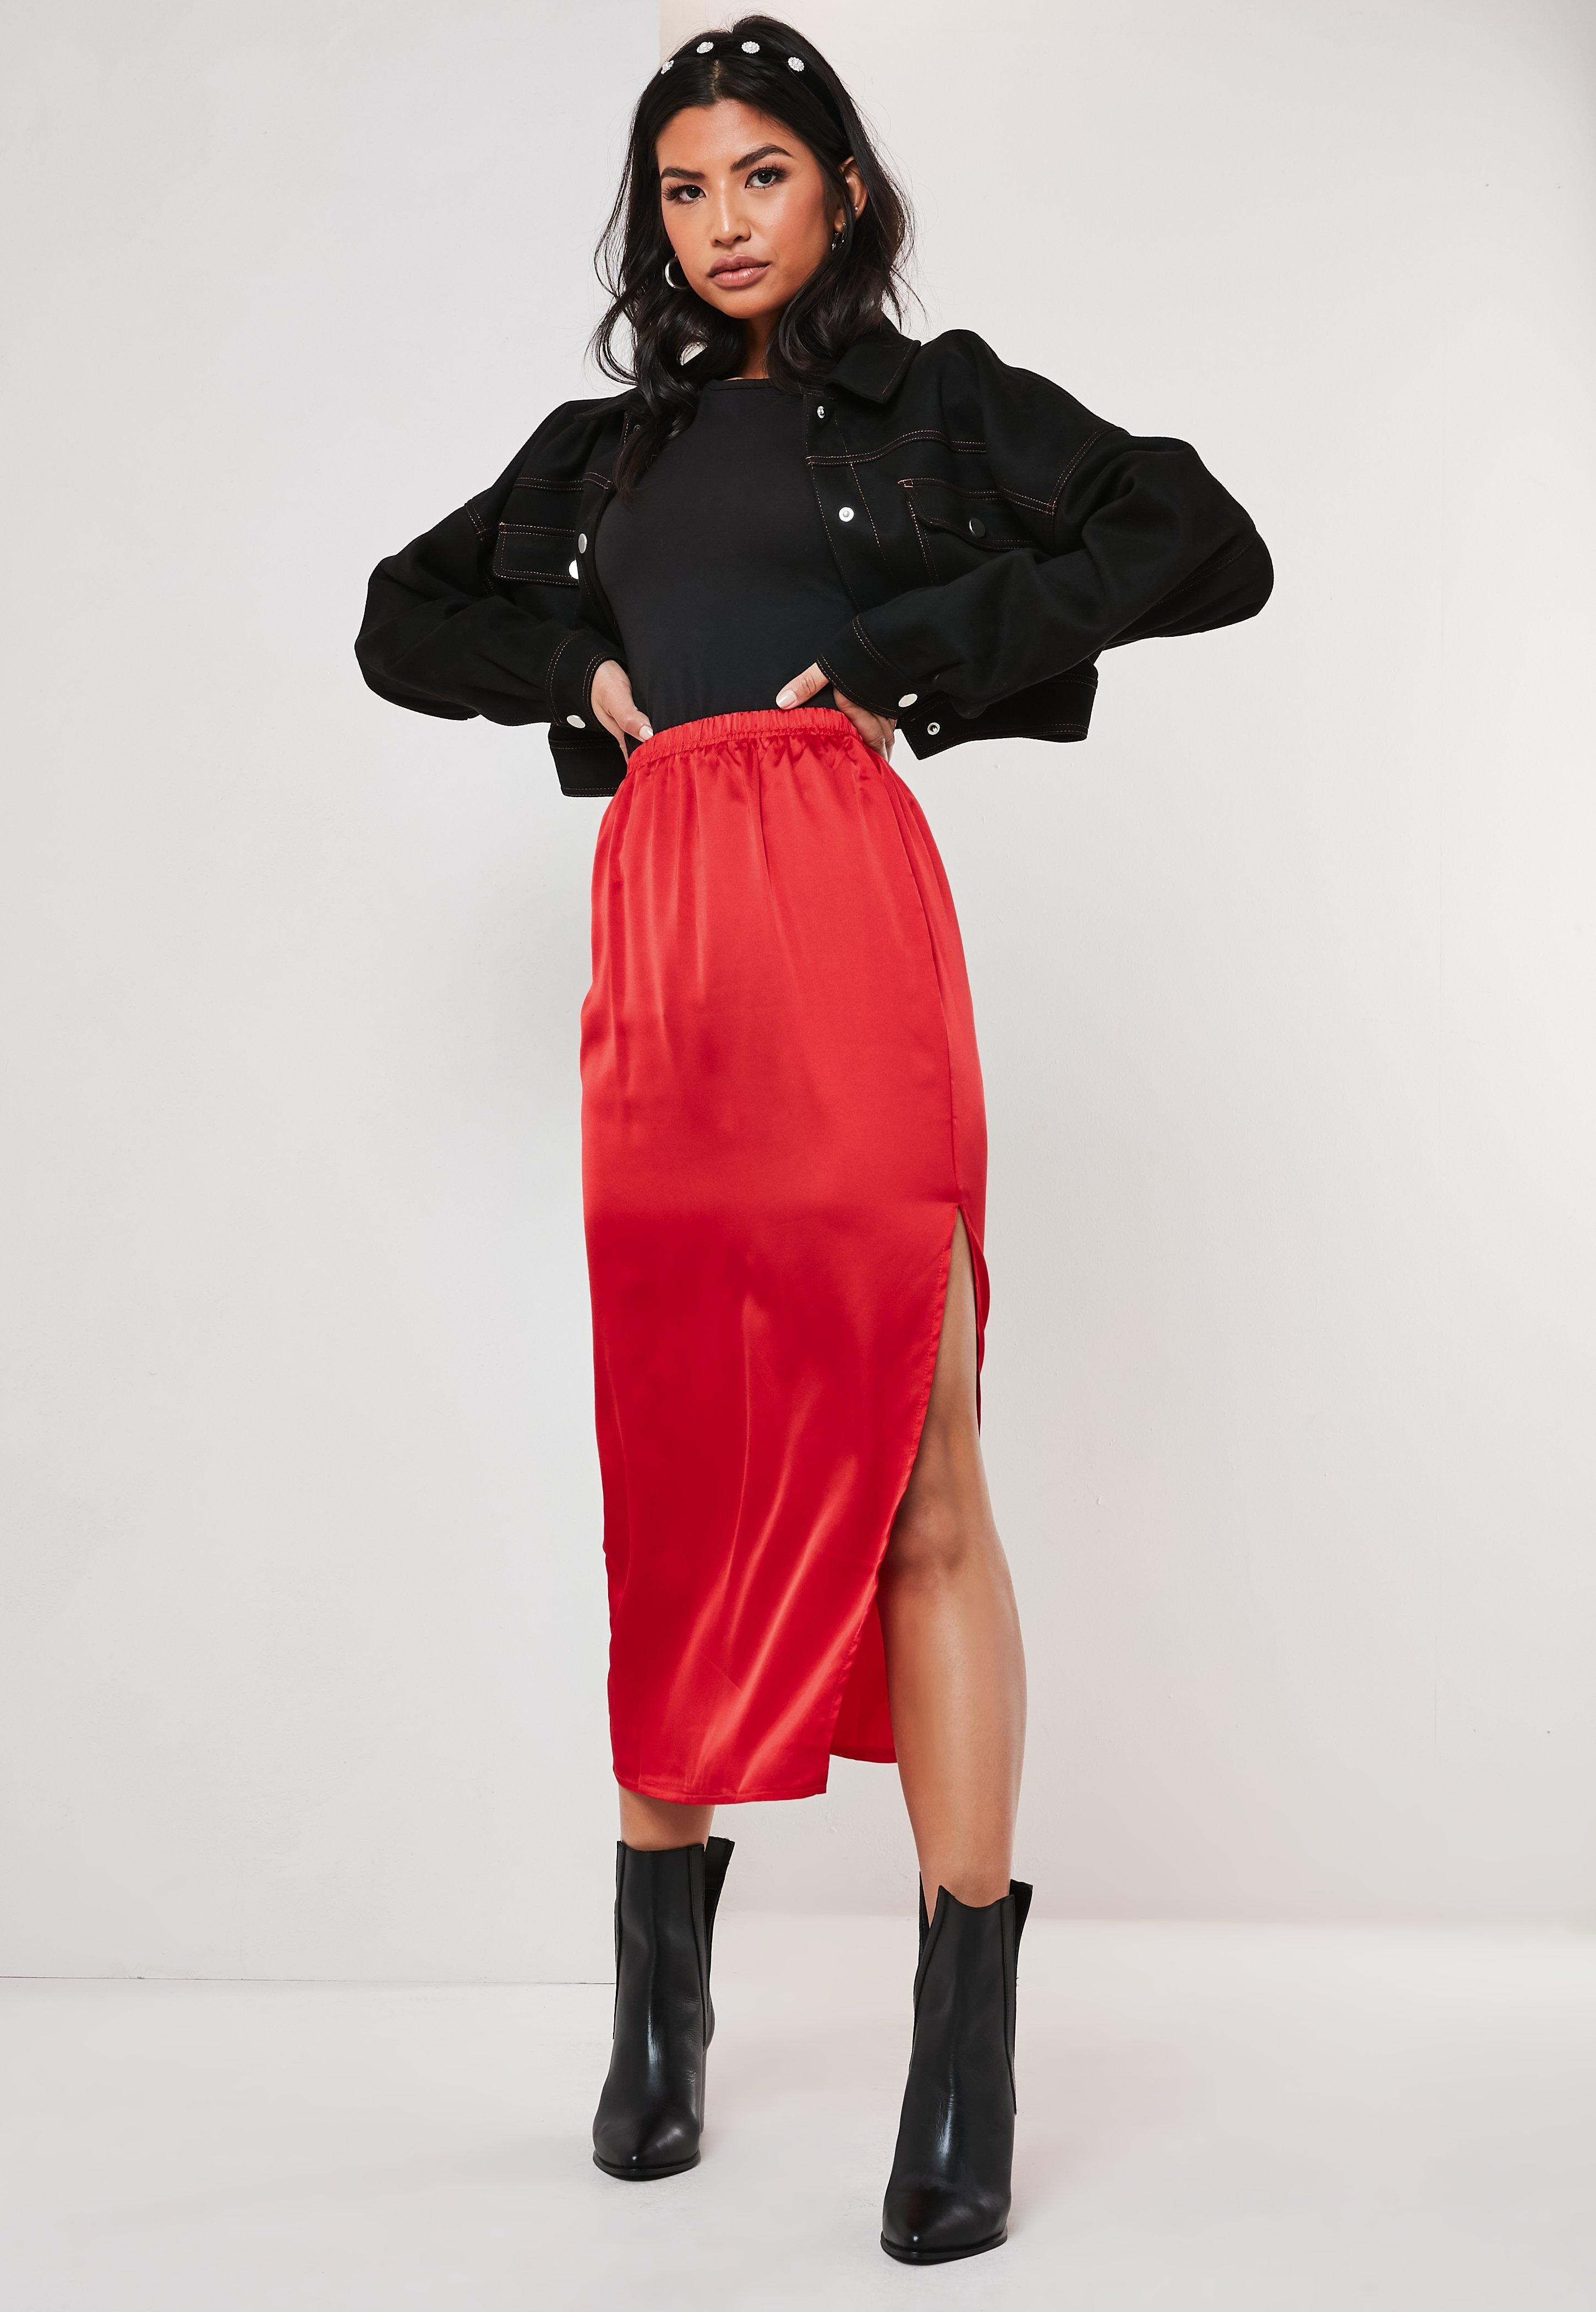 260a8d0628 Red Skirts | Women's Scarlett & Maroon Skirts | Missguided